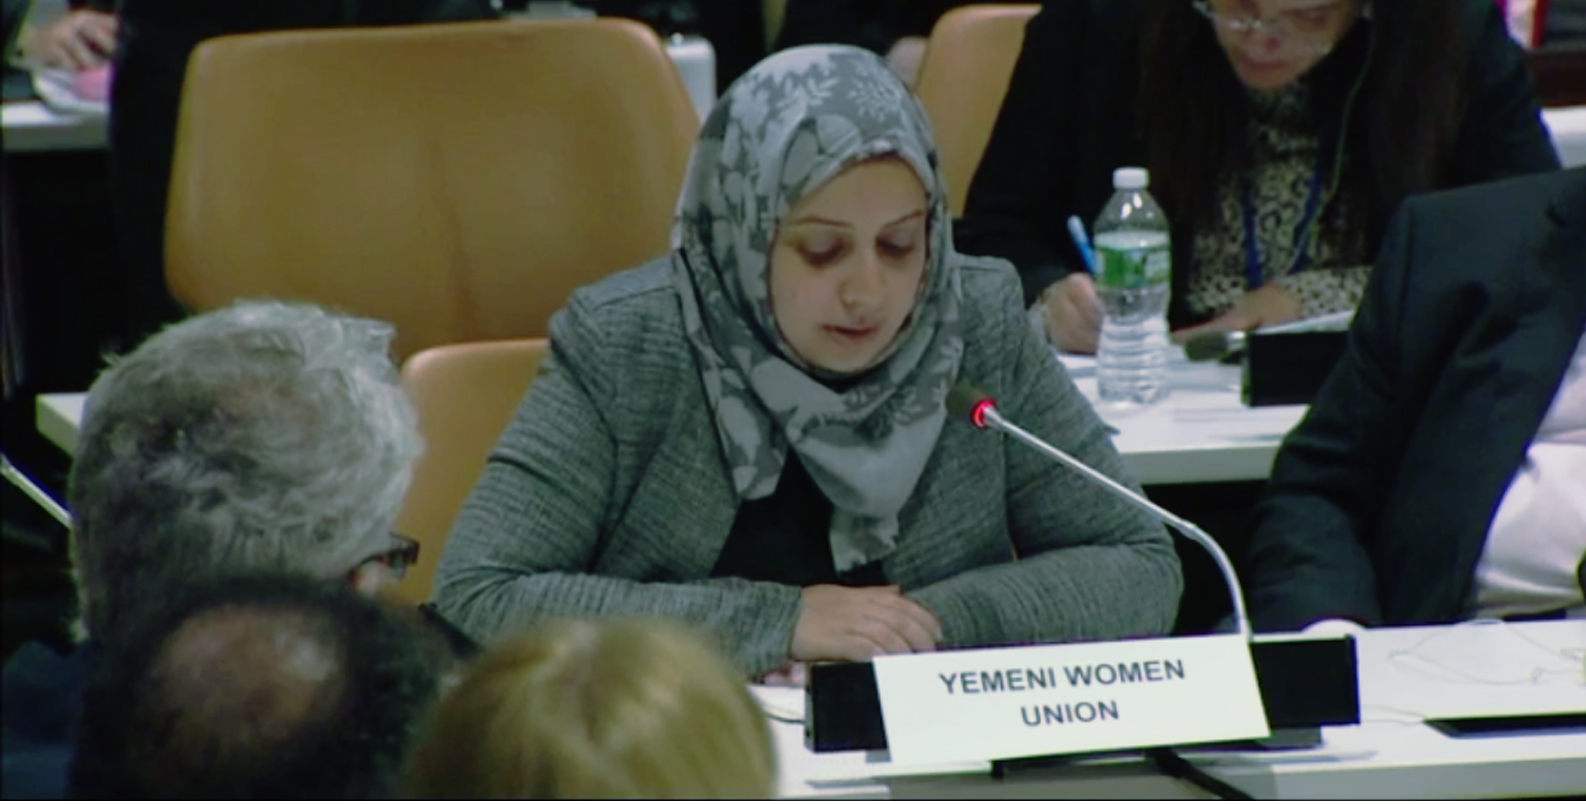 Yemen Women Union Participates in high-level Ministerial event on the humanitarian crisis in Yemen organized by UNGA OCHA.